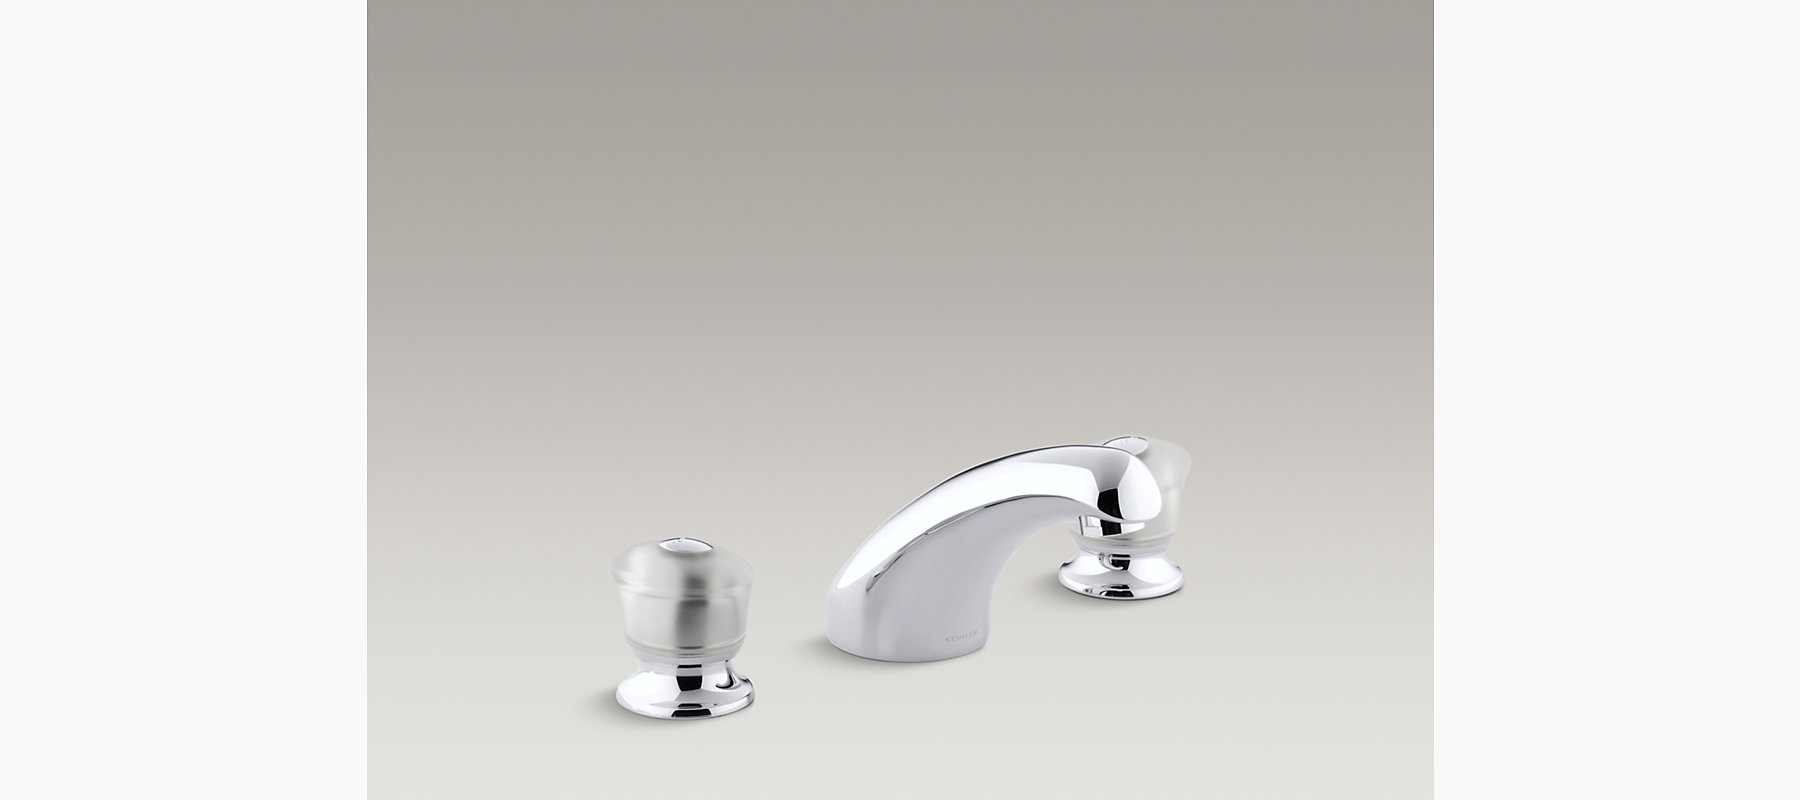 Coralais Bath-Mount High-Flow Bath Faucet Trim | K-T15294-7 | KOHLER